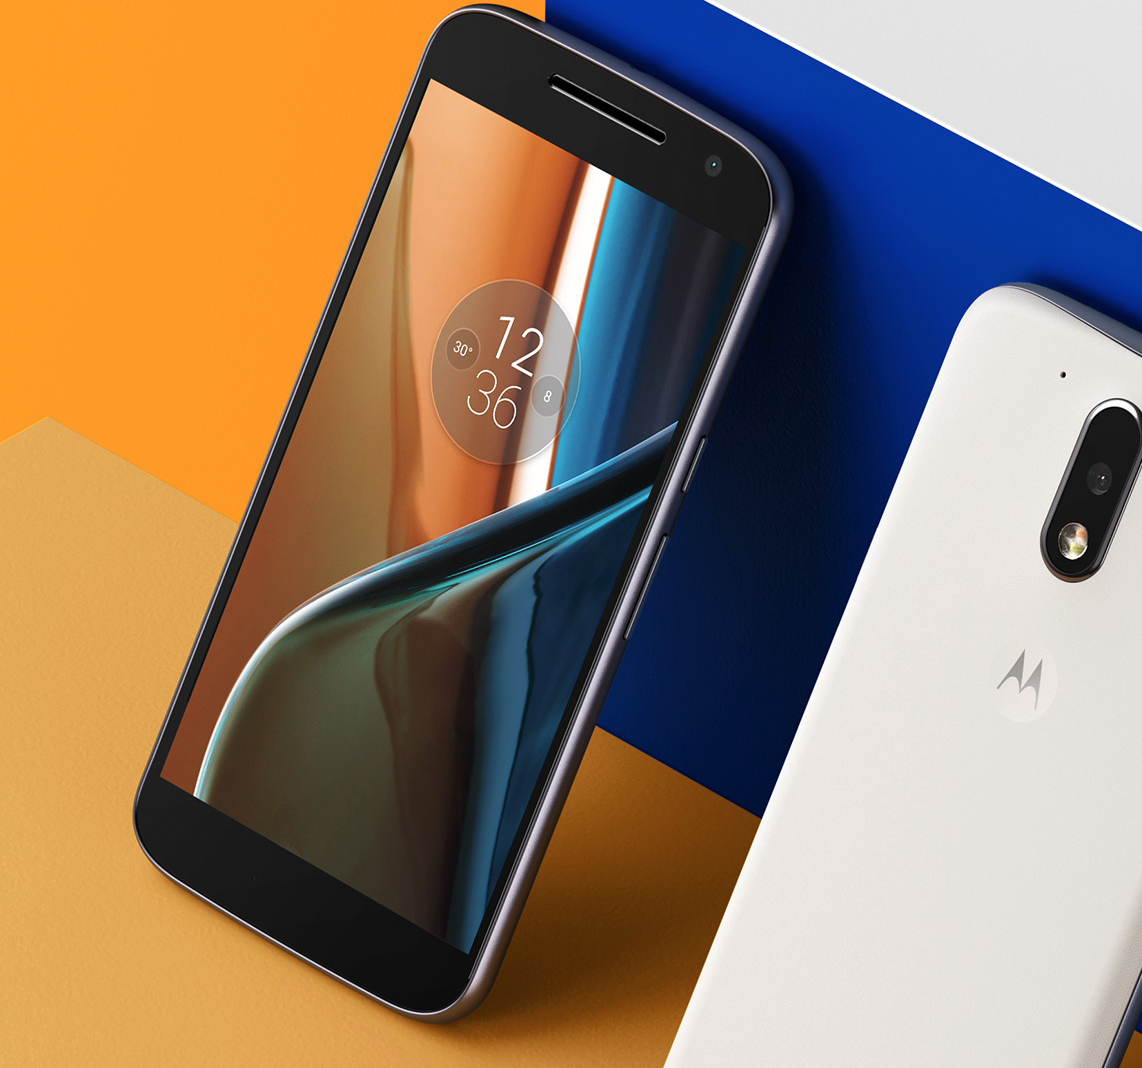 Download official moto g4 wallpapers - Moto g4 stock wallpapers ...